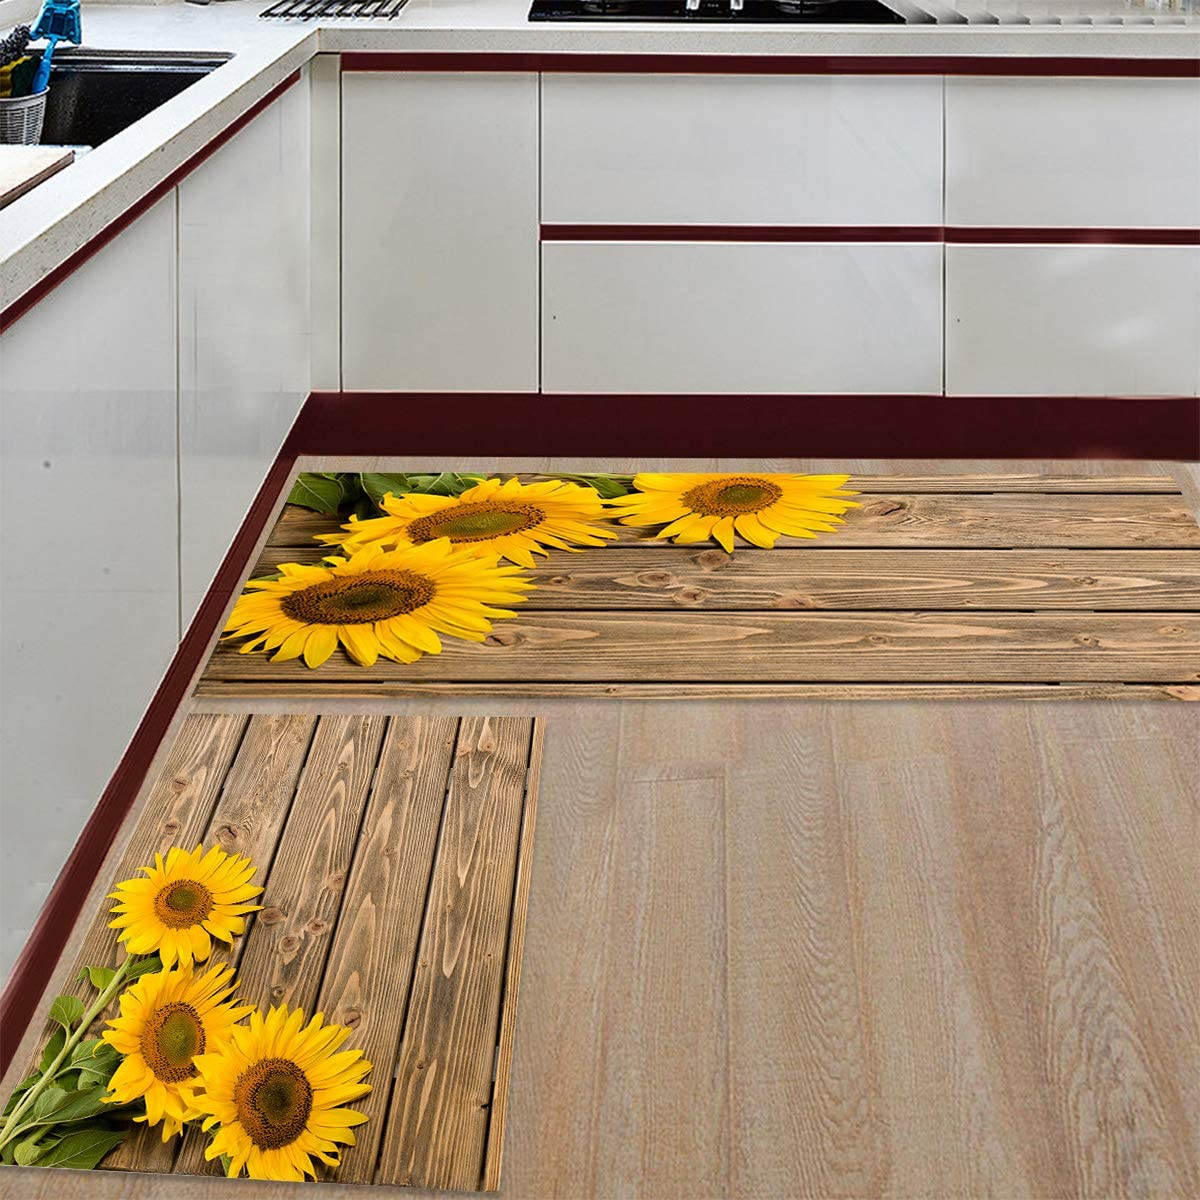 Fantasy Staring Kitchen Rugs Sets 9 Piece Floor Mats 9 Sunflower on The  Wooden Table Doormat Non Slip Rubber Backing Area Rugs Washable Carpet  Inside ...